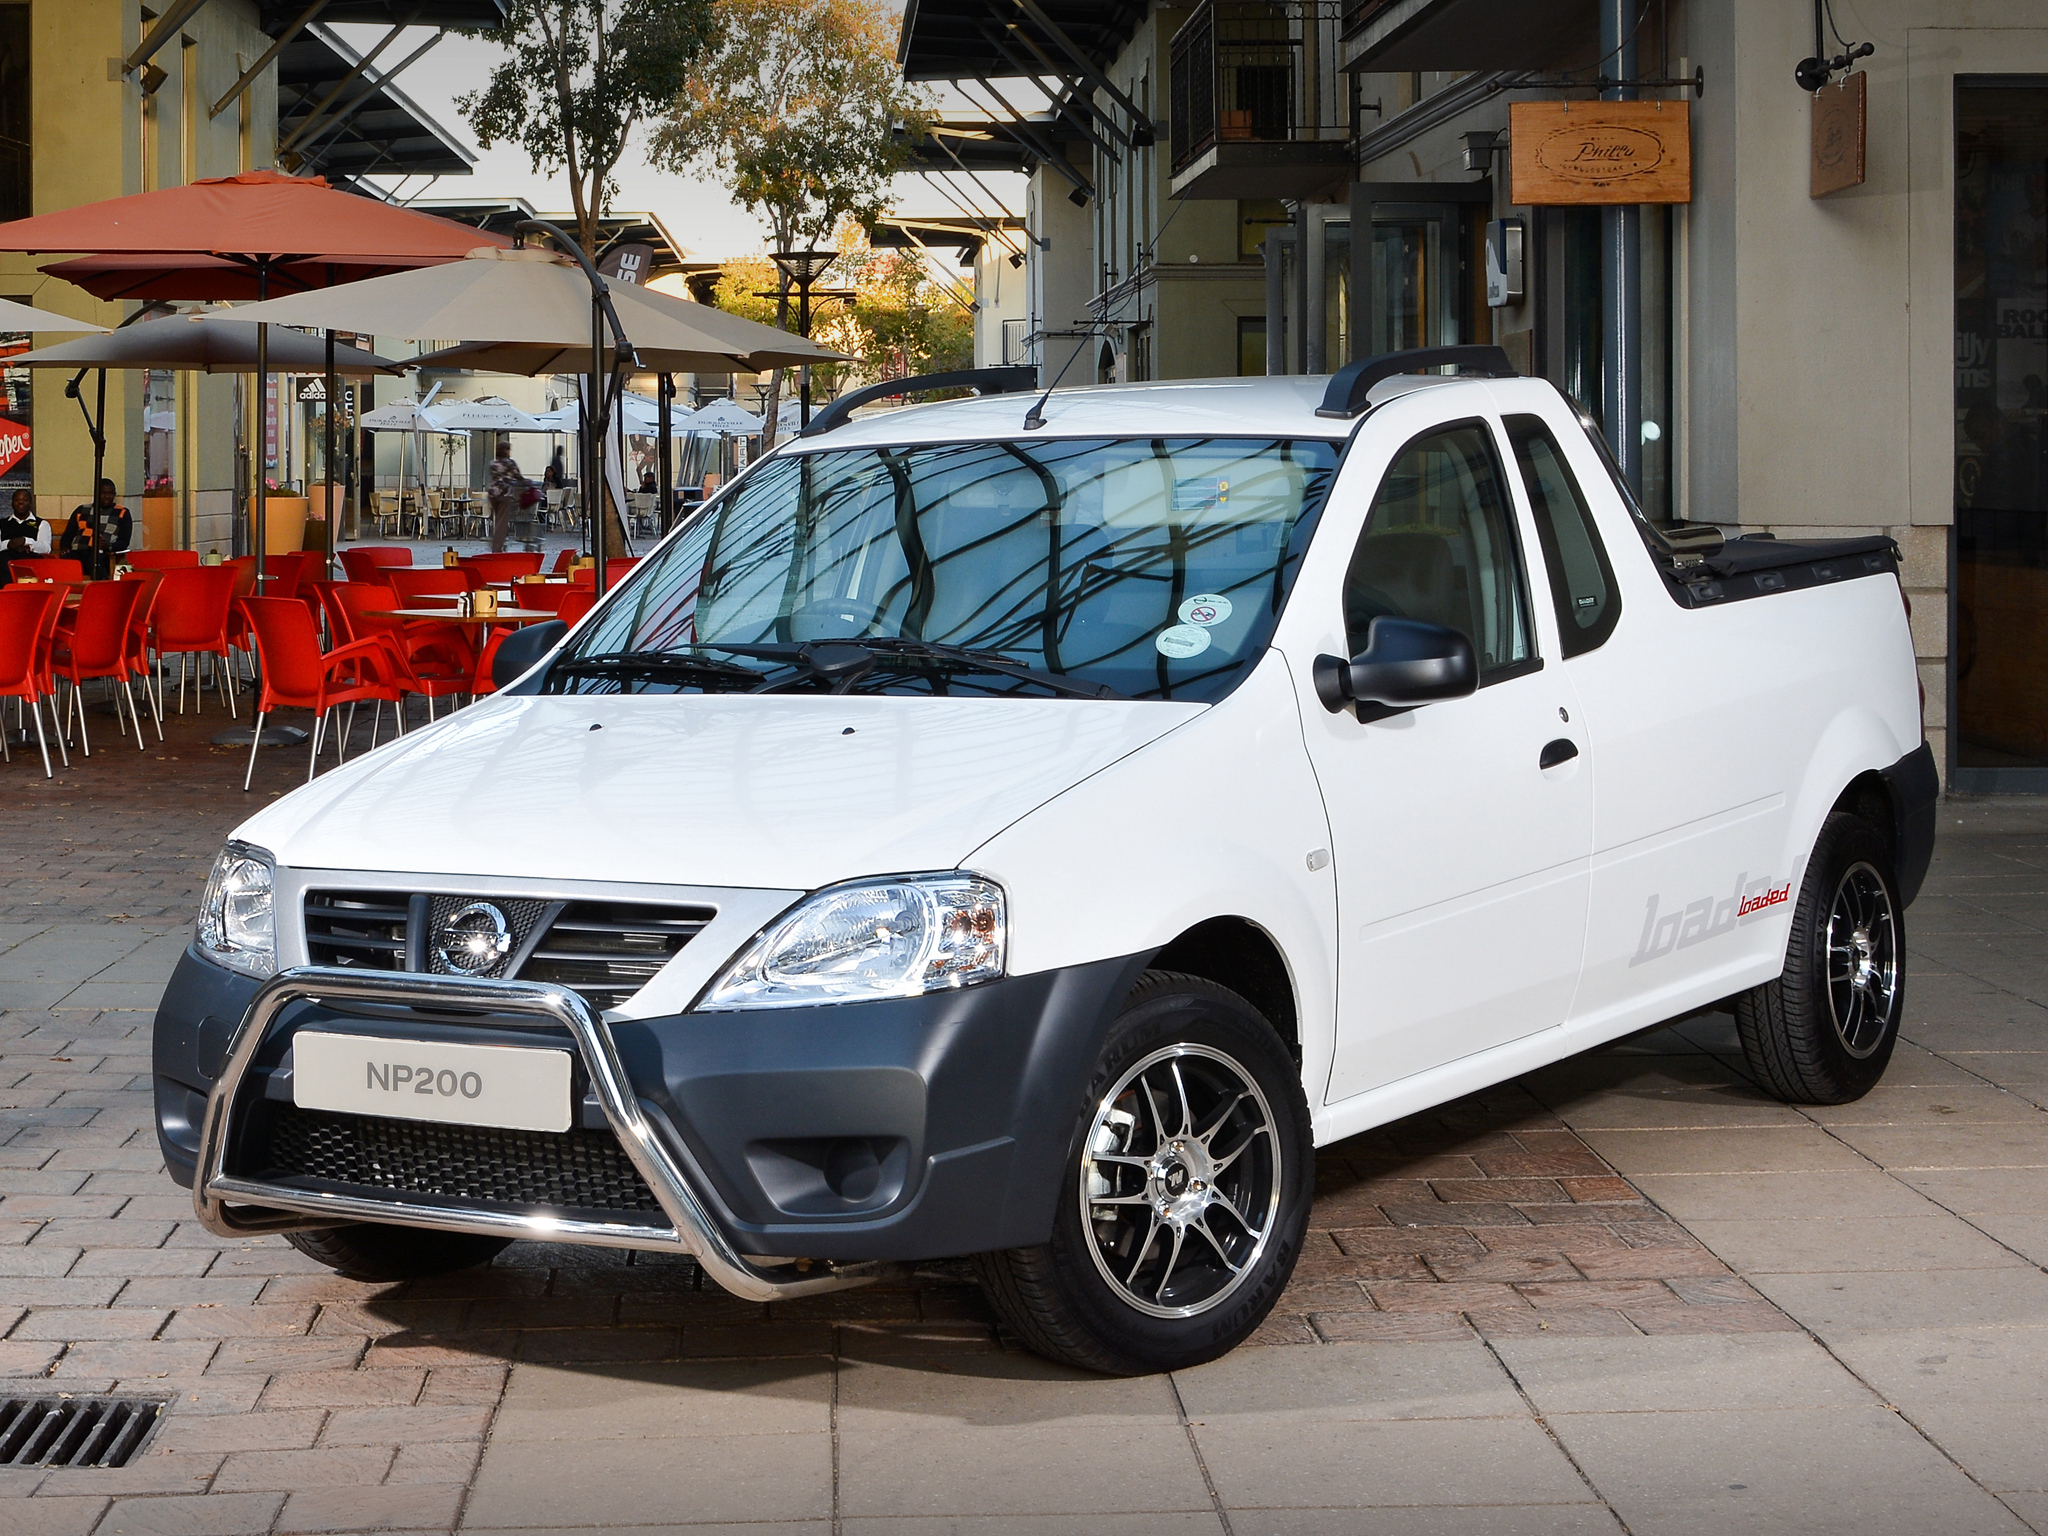 Nissan Np200 Is A Dacia Logan Pick Up In South Africa